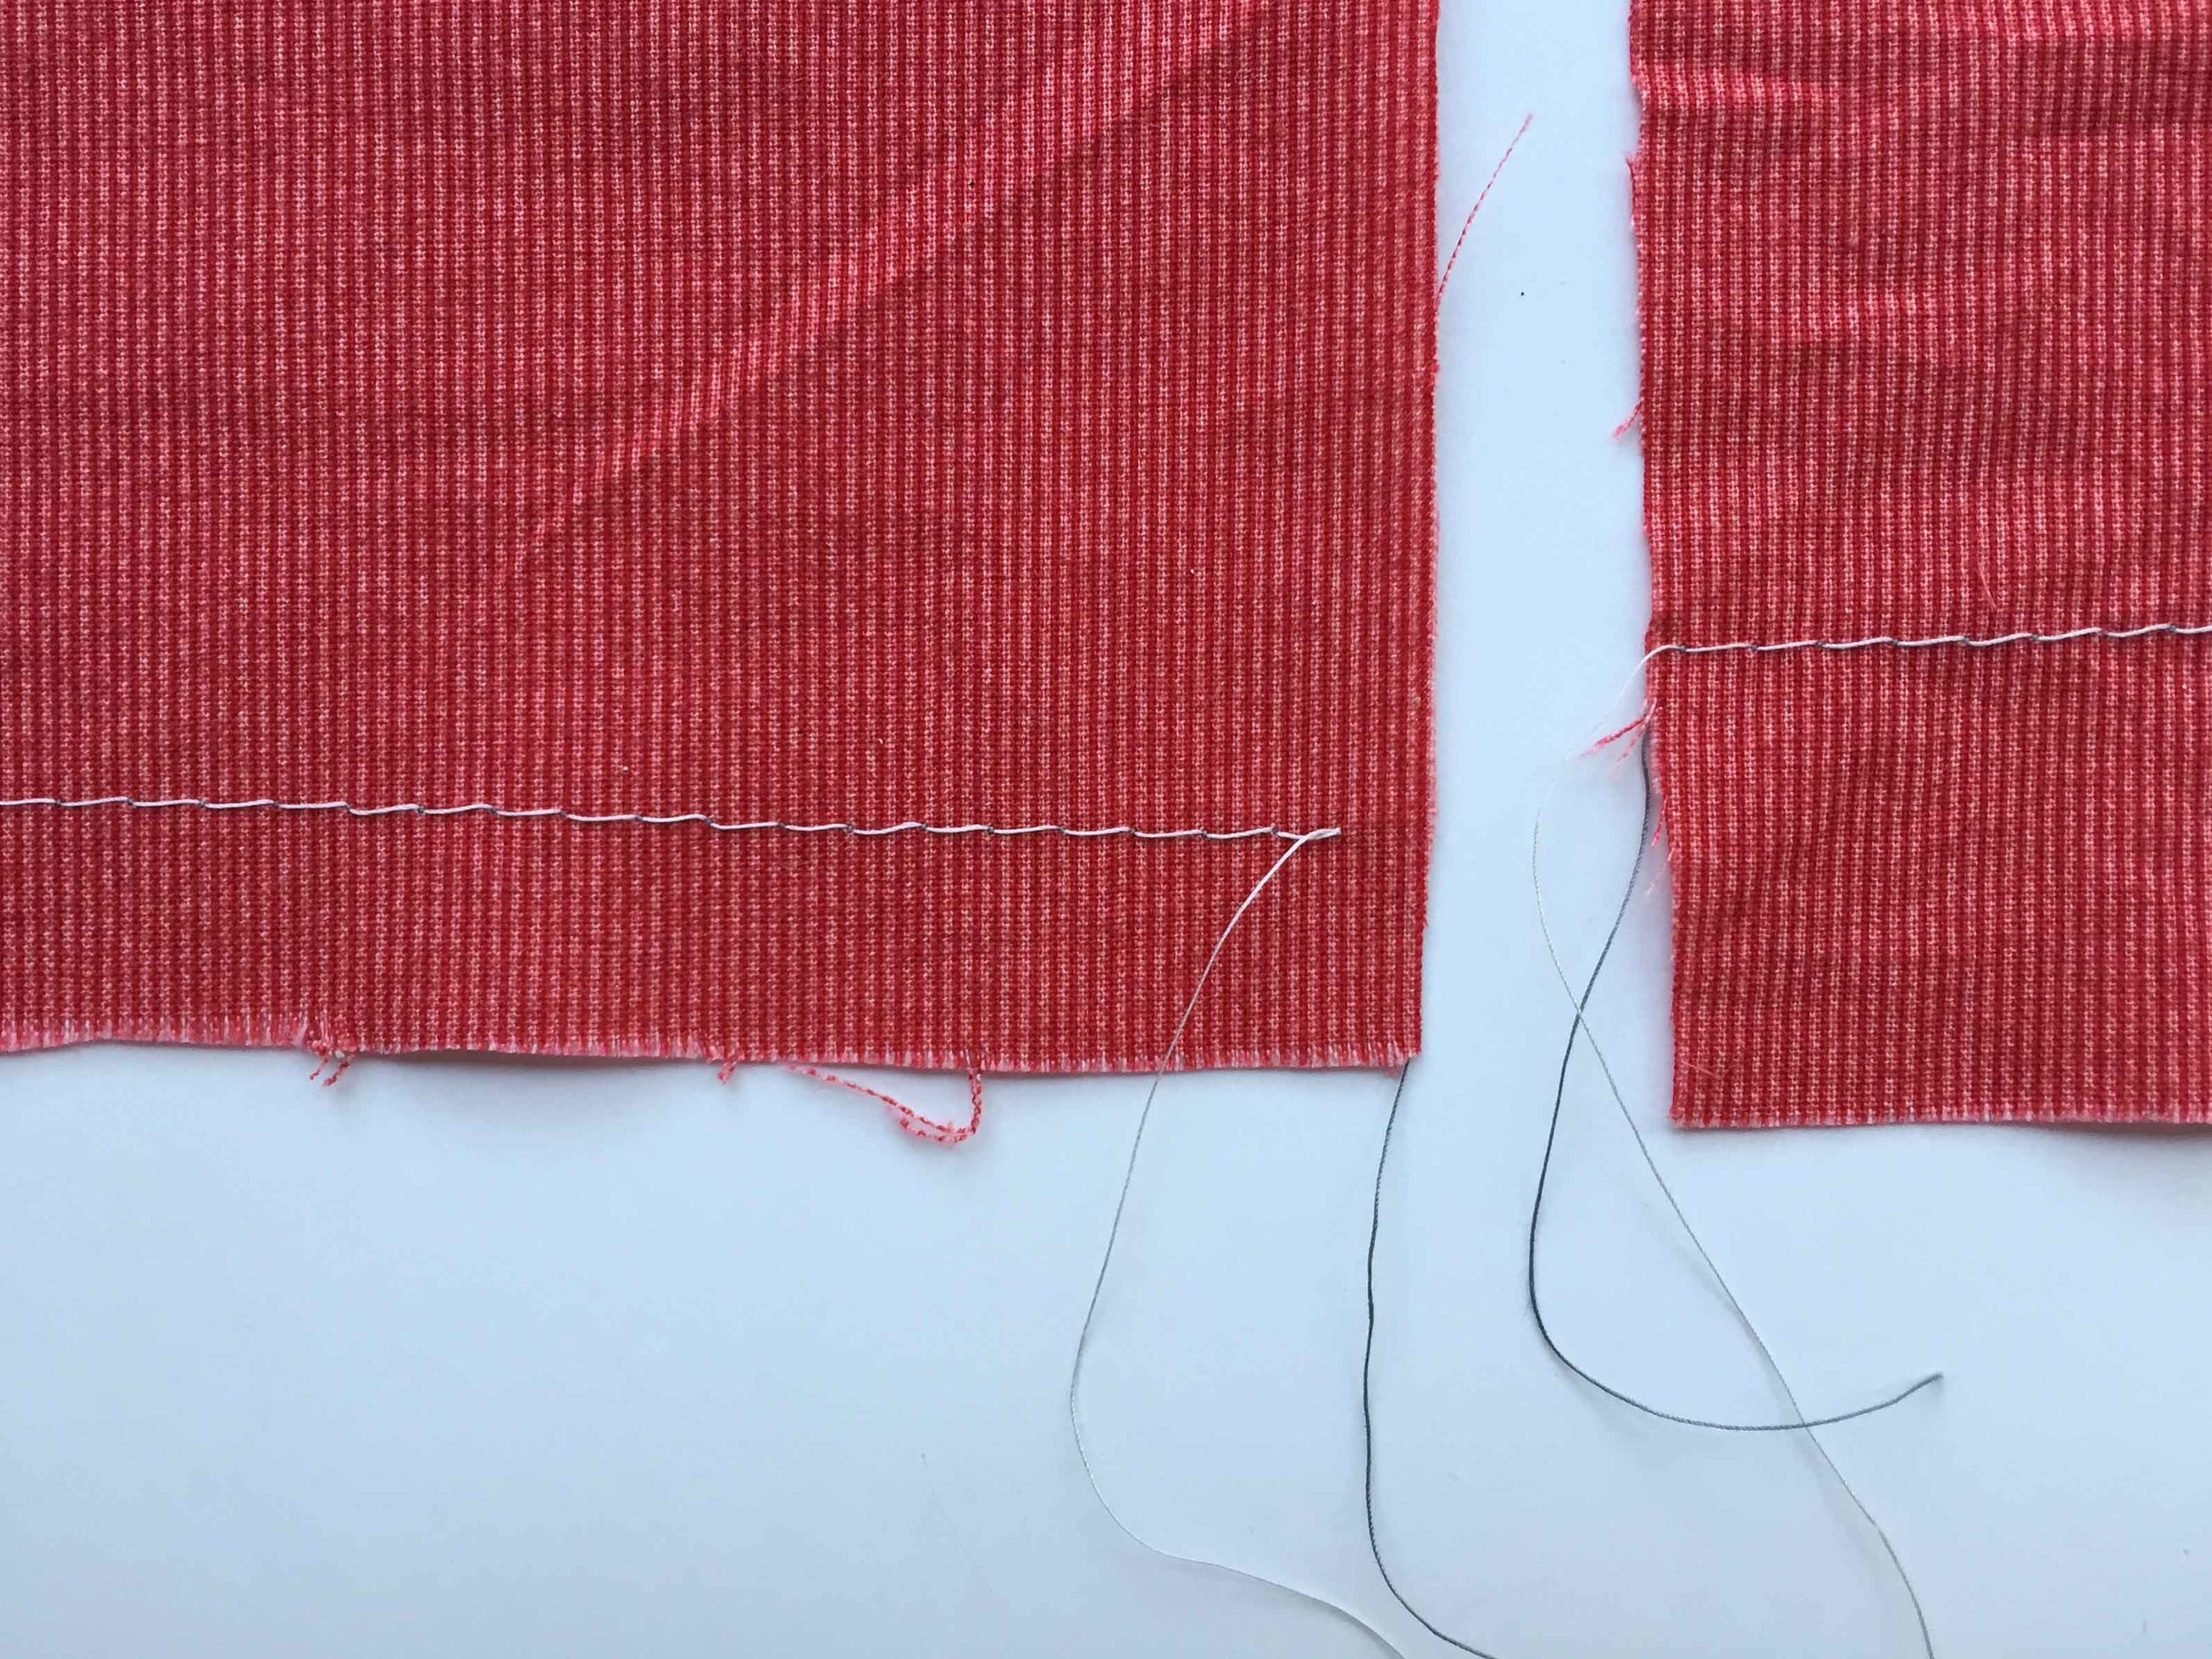 The basting stitch on the left was sewed at 1.5cm and the one on the right at 2.5cm. I also do some at about 4 or 5cm - whichgives a heavier hem. Contrasting thread on the right side of the fabric.